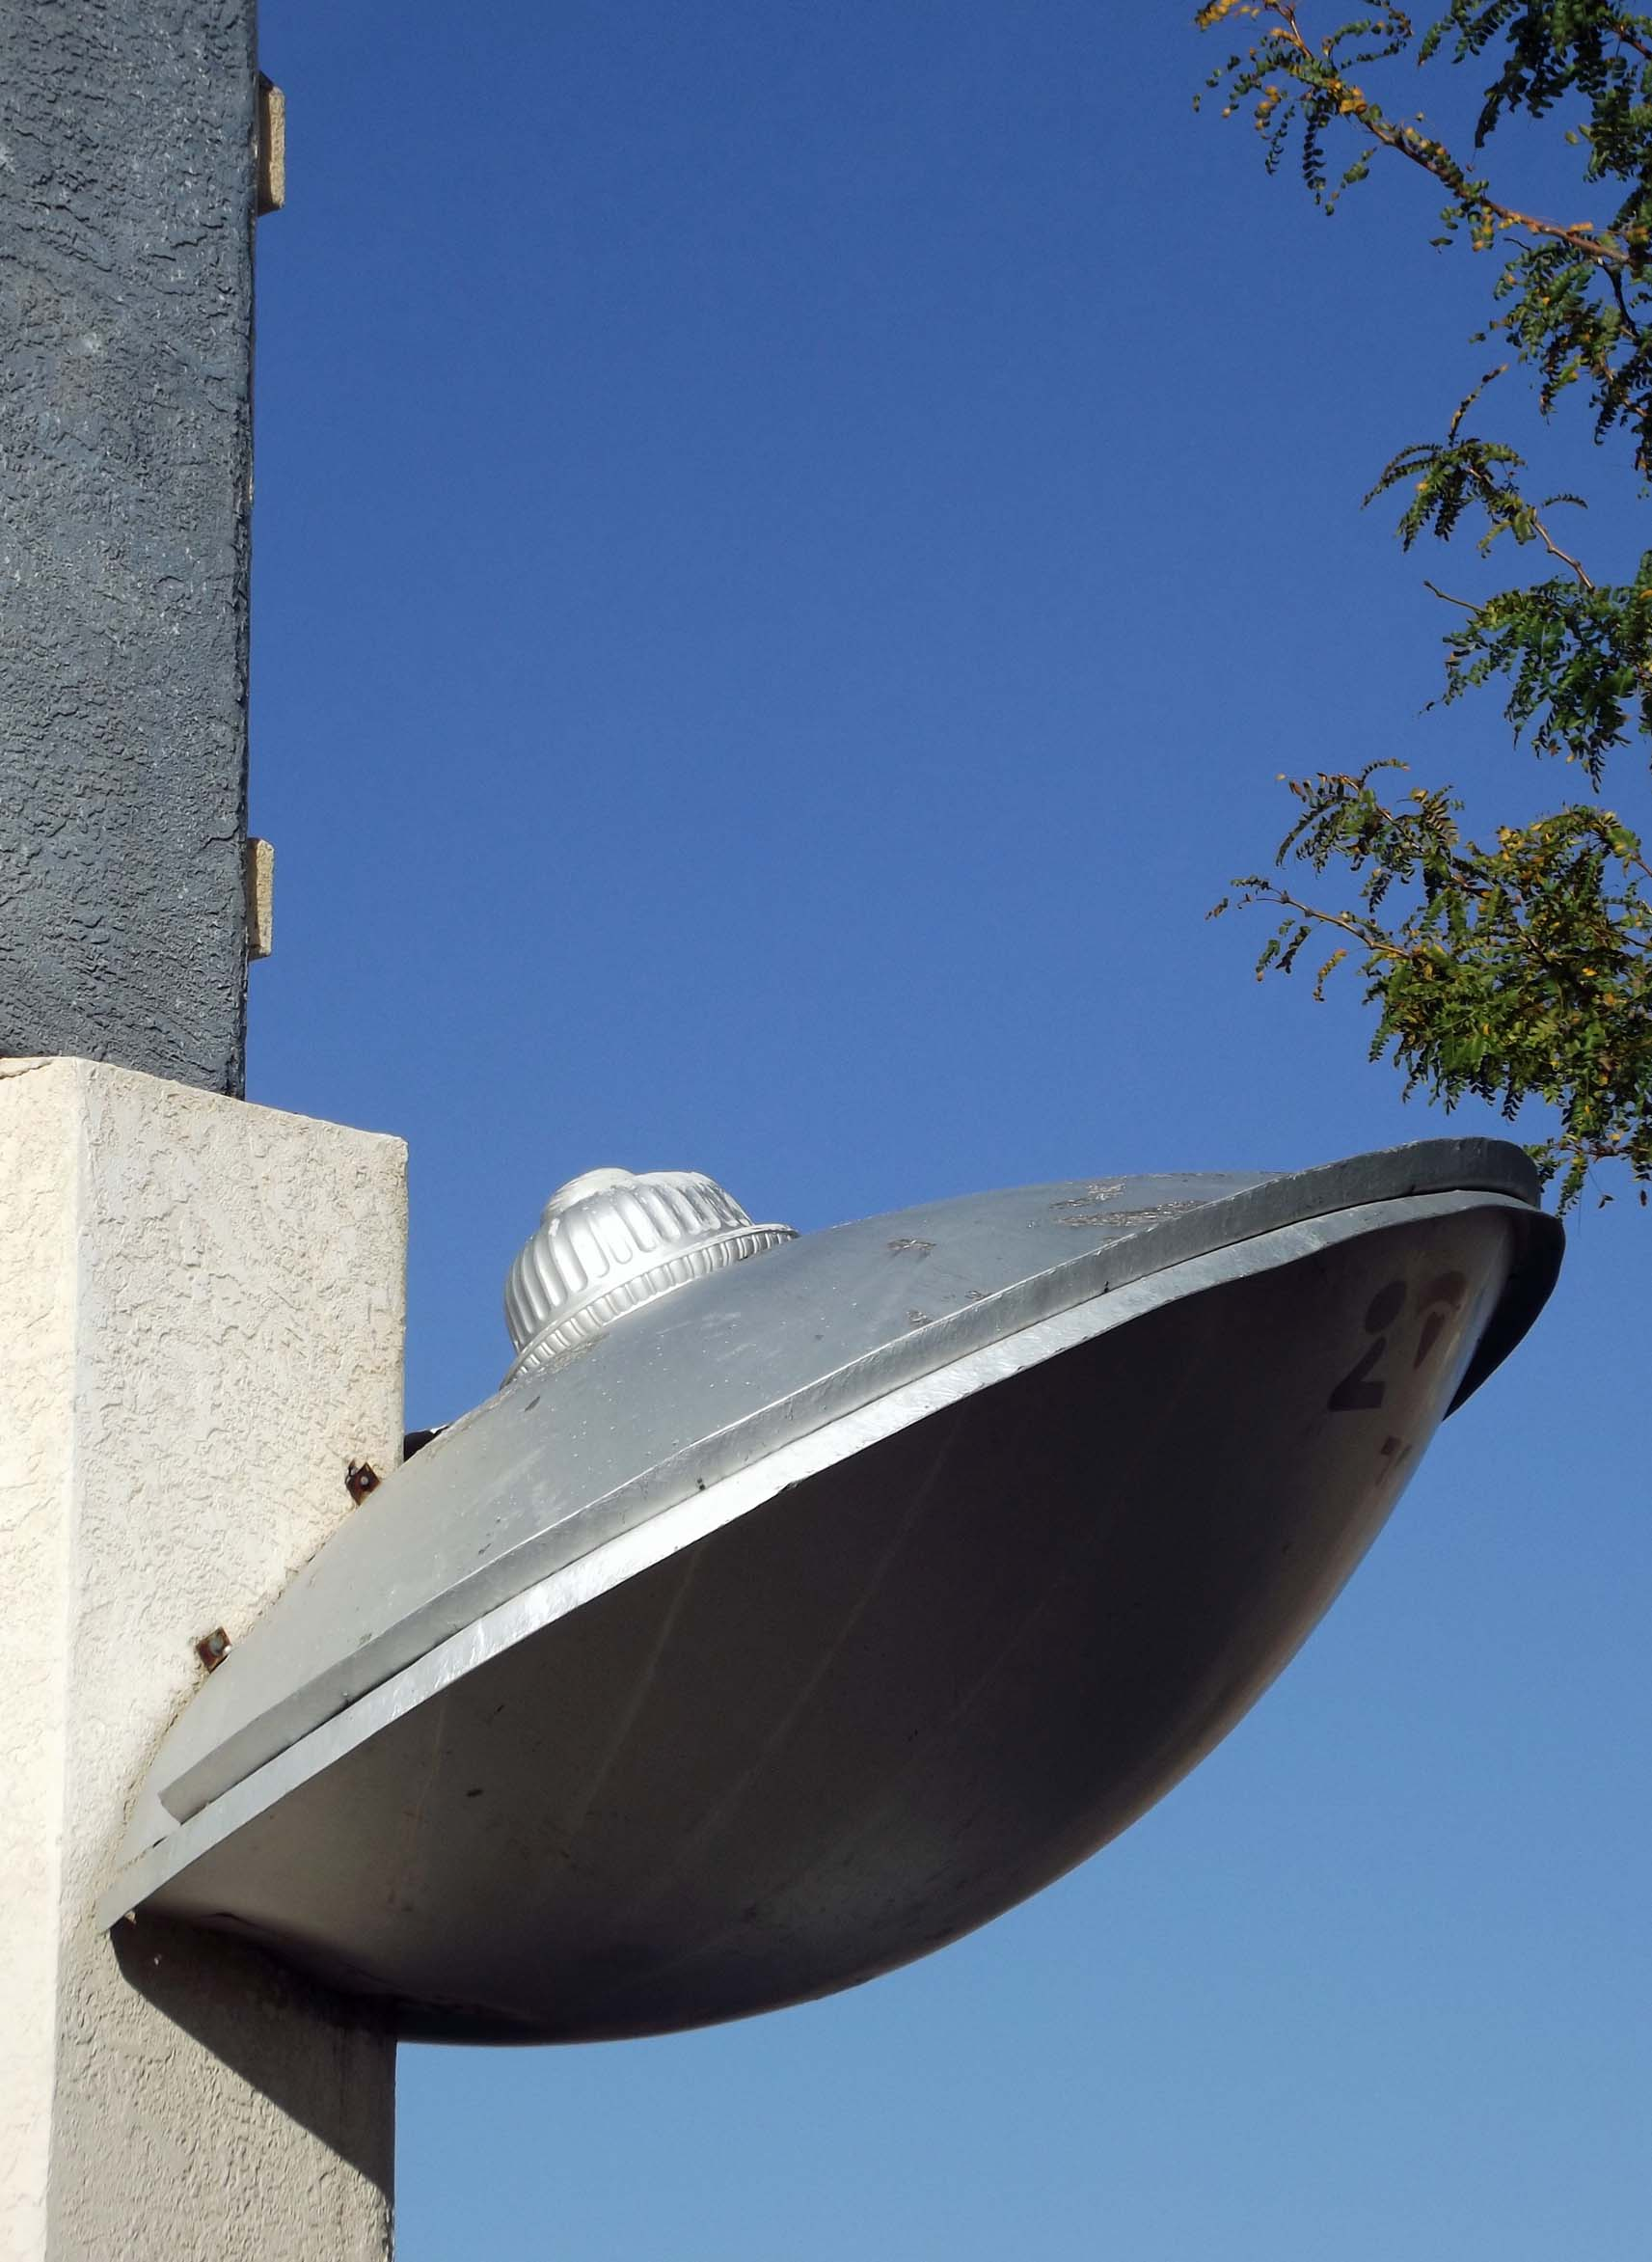 Model of flying saucer attached to a building